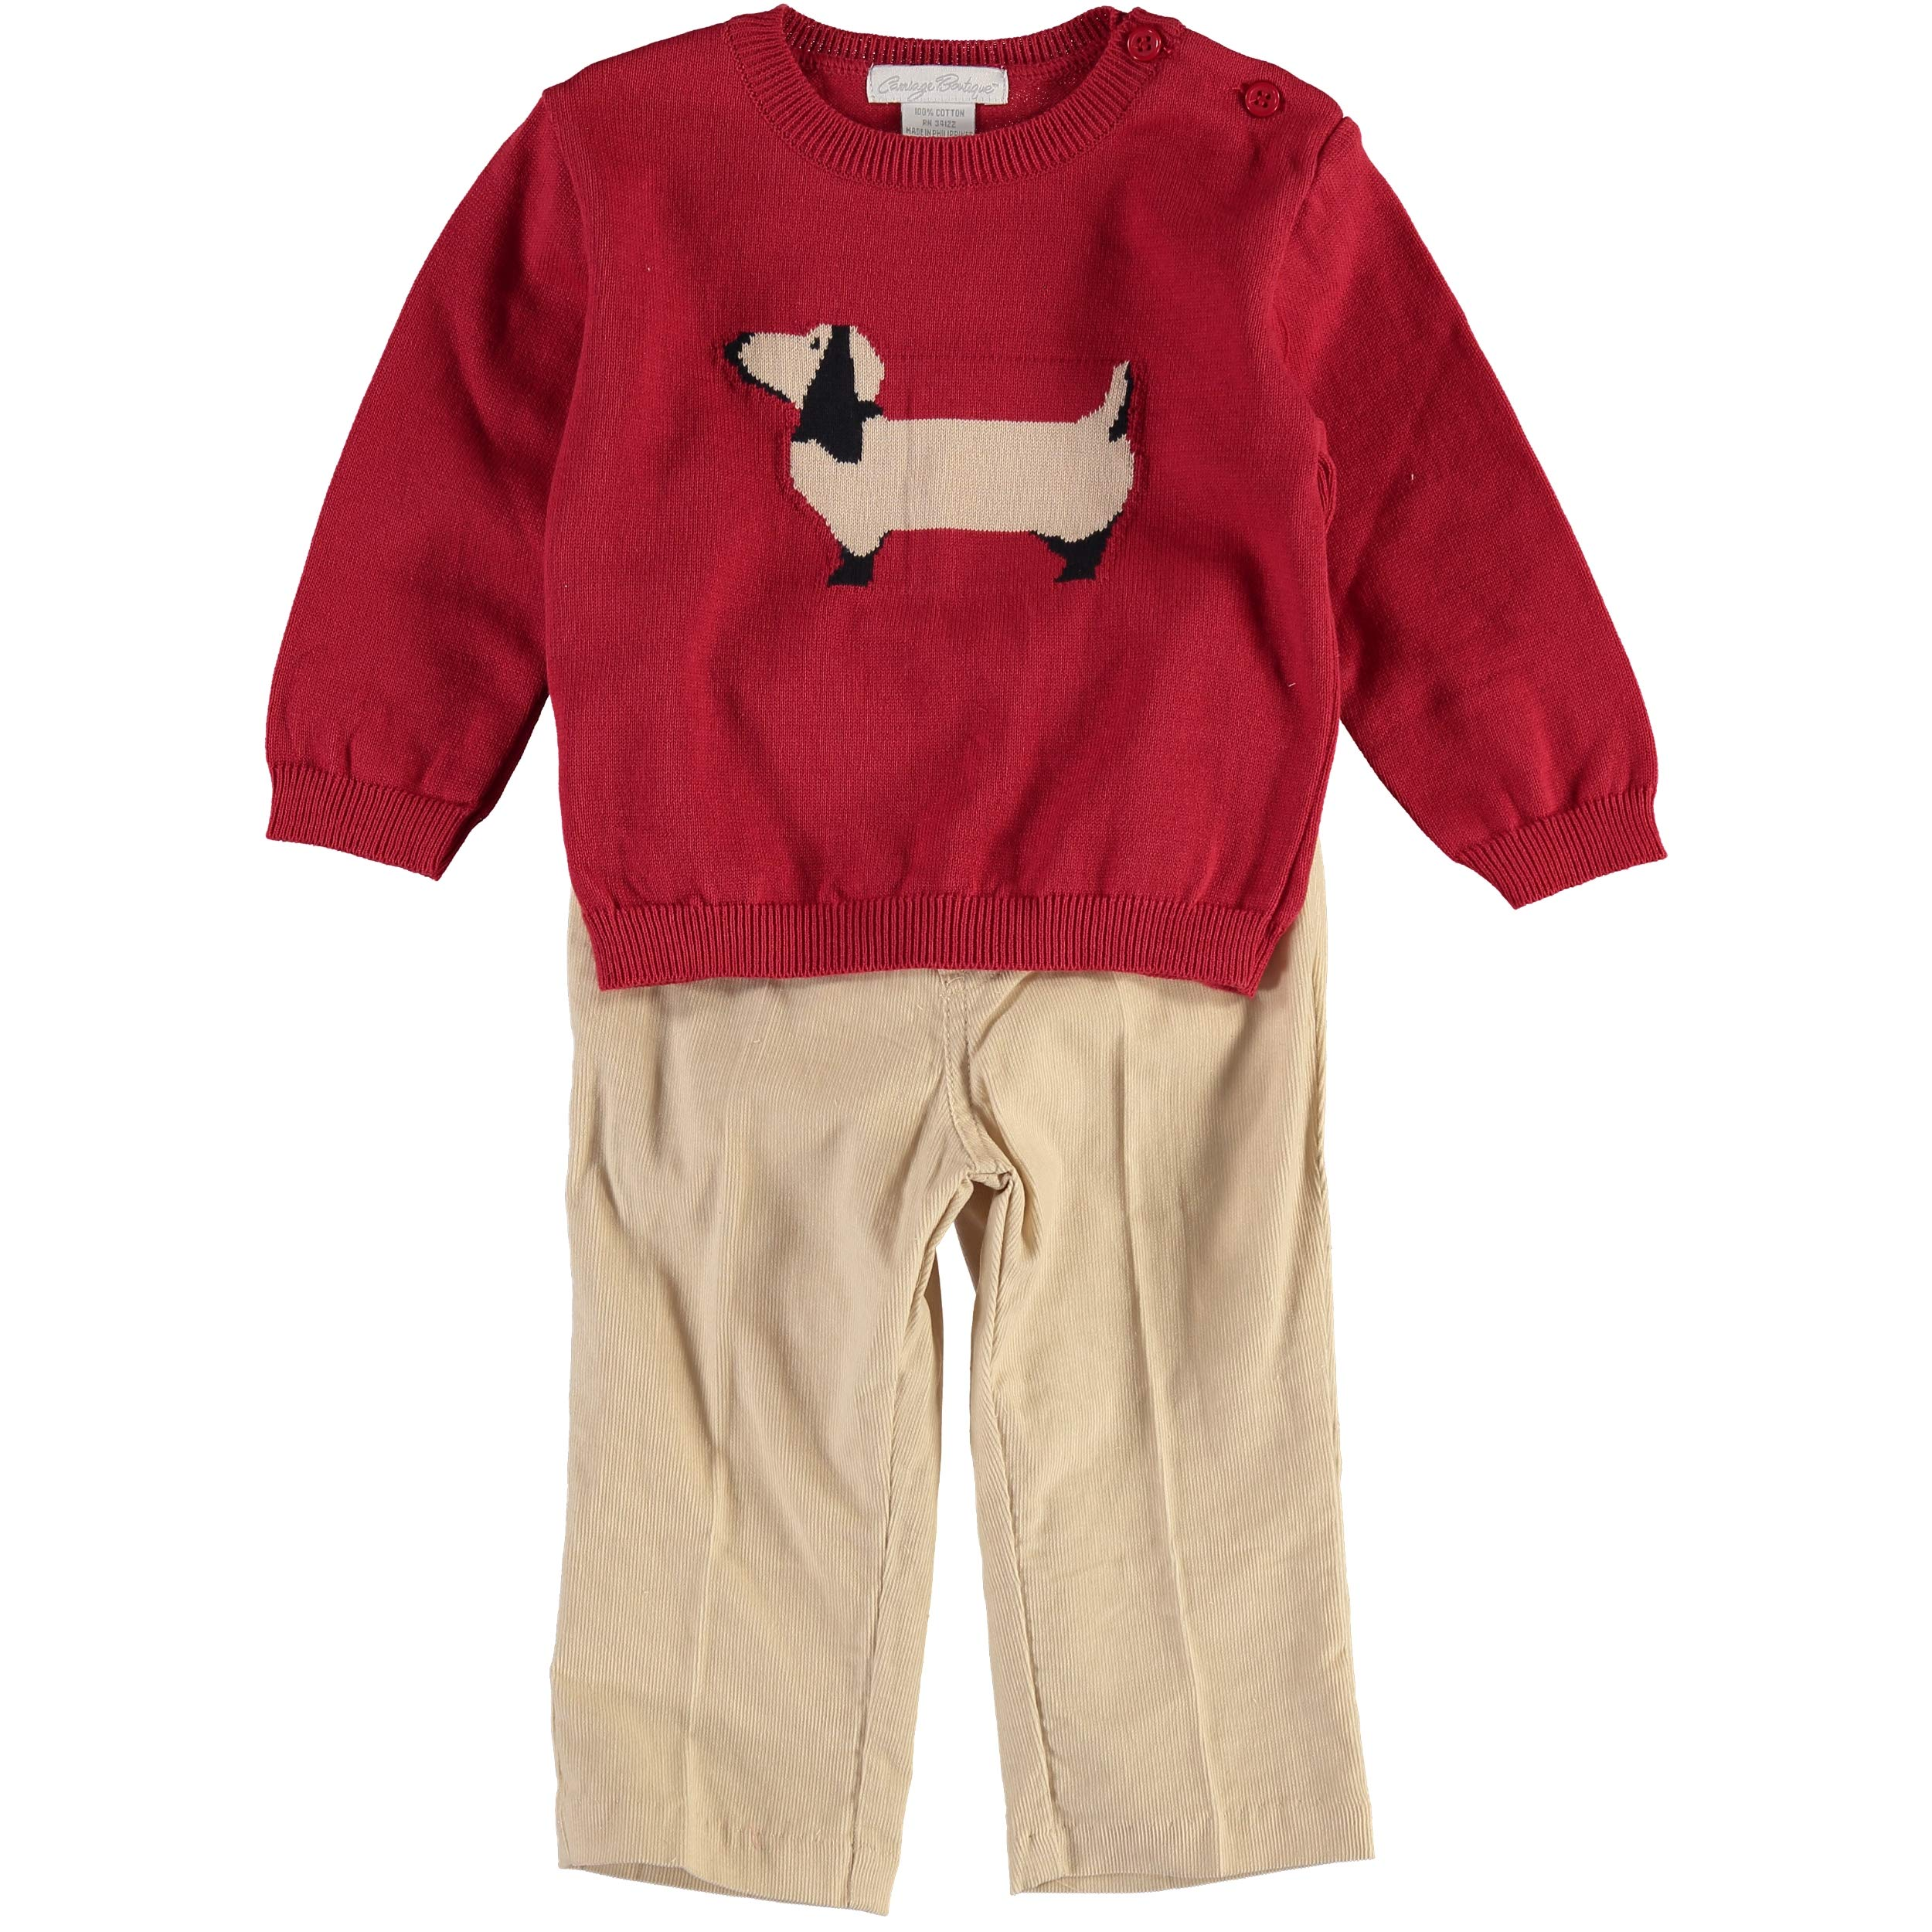 Carriage Boutique Boys Pullover Sweater and Pants Set with Scotty Dogs